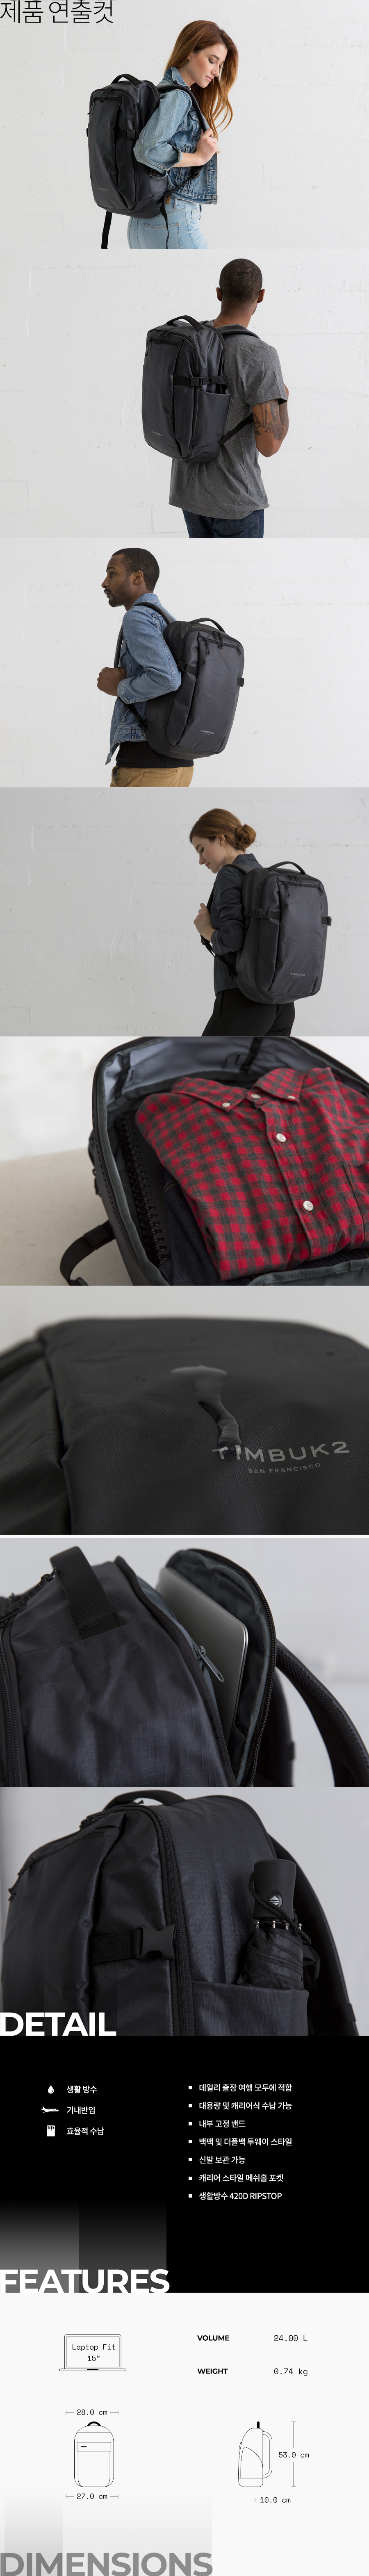 timbuk2 travel